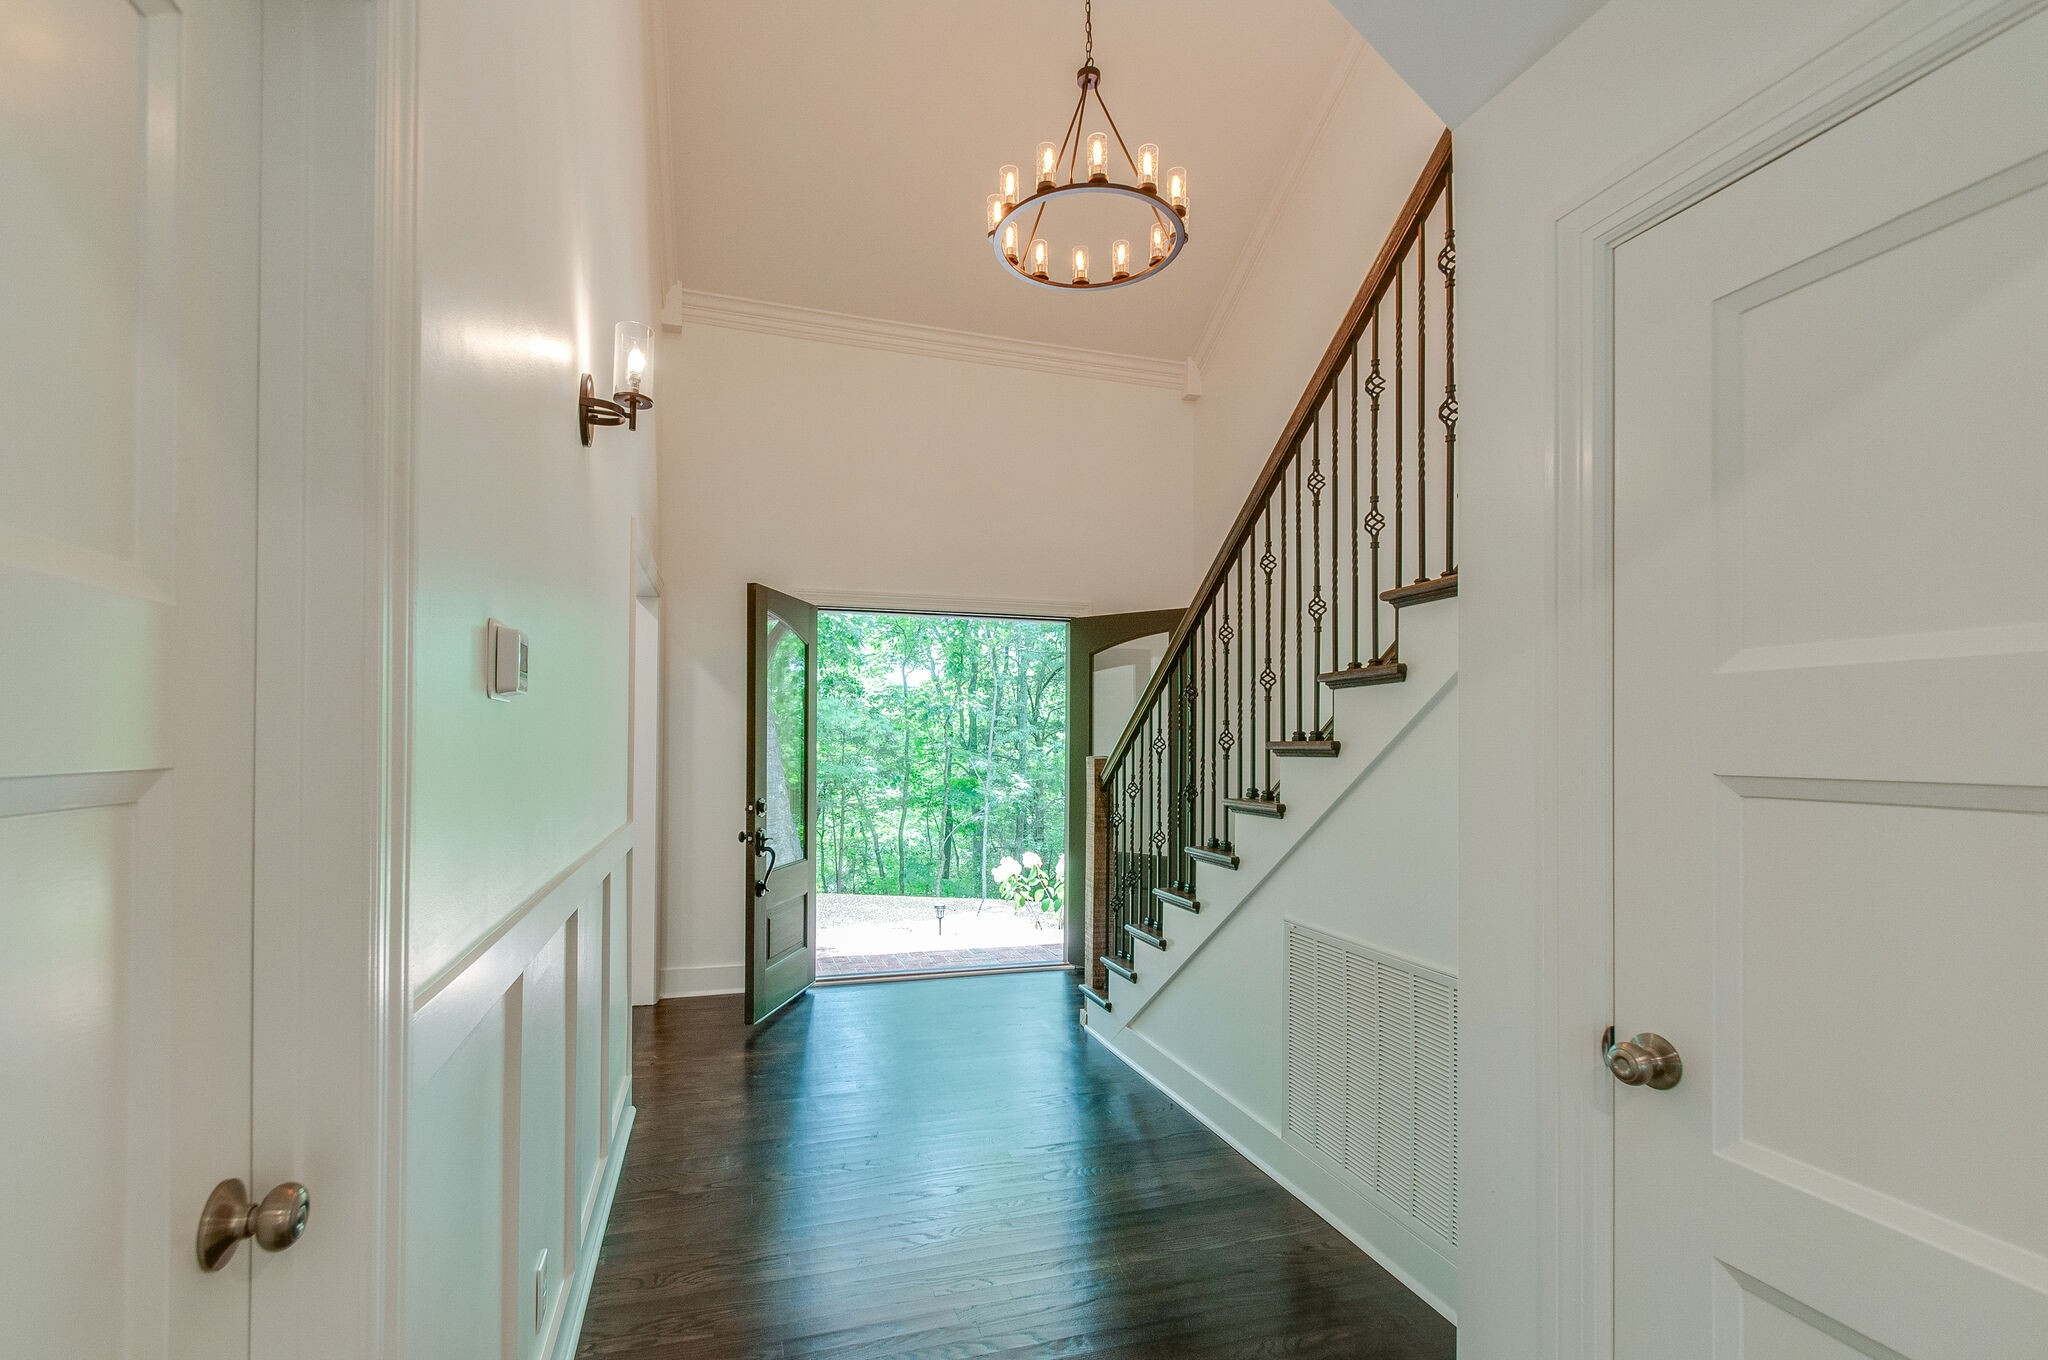 Stylishly remodeled home w/pool nestled on a 4.5 acre private wooded hilltop. Private retreat, better than new! Open floorplan for entertaining. Huge deck, screened porch, lrg windows with tranquil views. Hardwoods & high-end finishes throughout. Full bath in each BR. Chef's kitchen w/8-burner gas stv. Master on main flr has spa bath w/private laundry rm. Second laundry rm upstairs services 3 additional BRs. Bonus rm w/bar, bath, clst. Extra 2-car detached garage w/workshop/tackroom + 2 stalls.